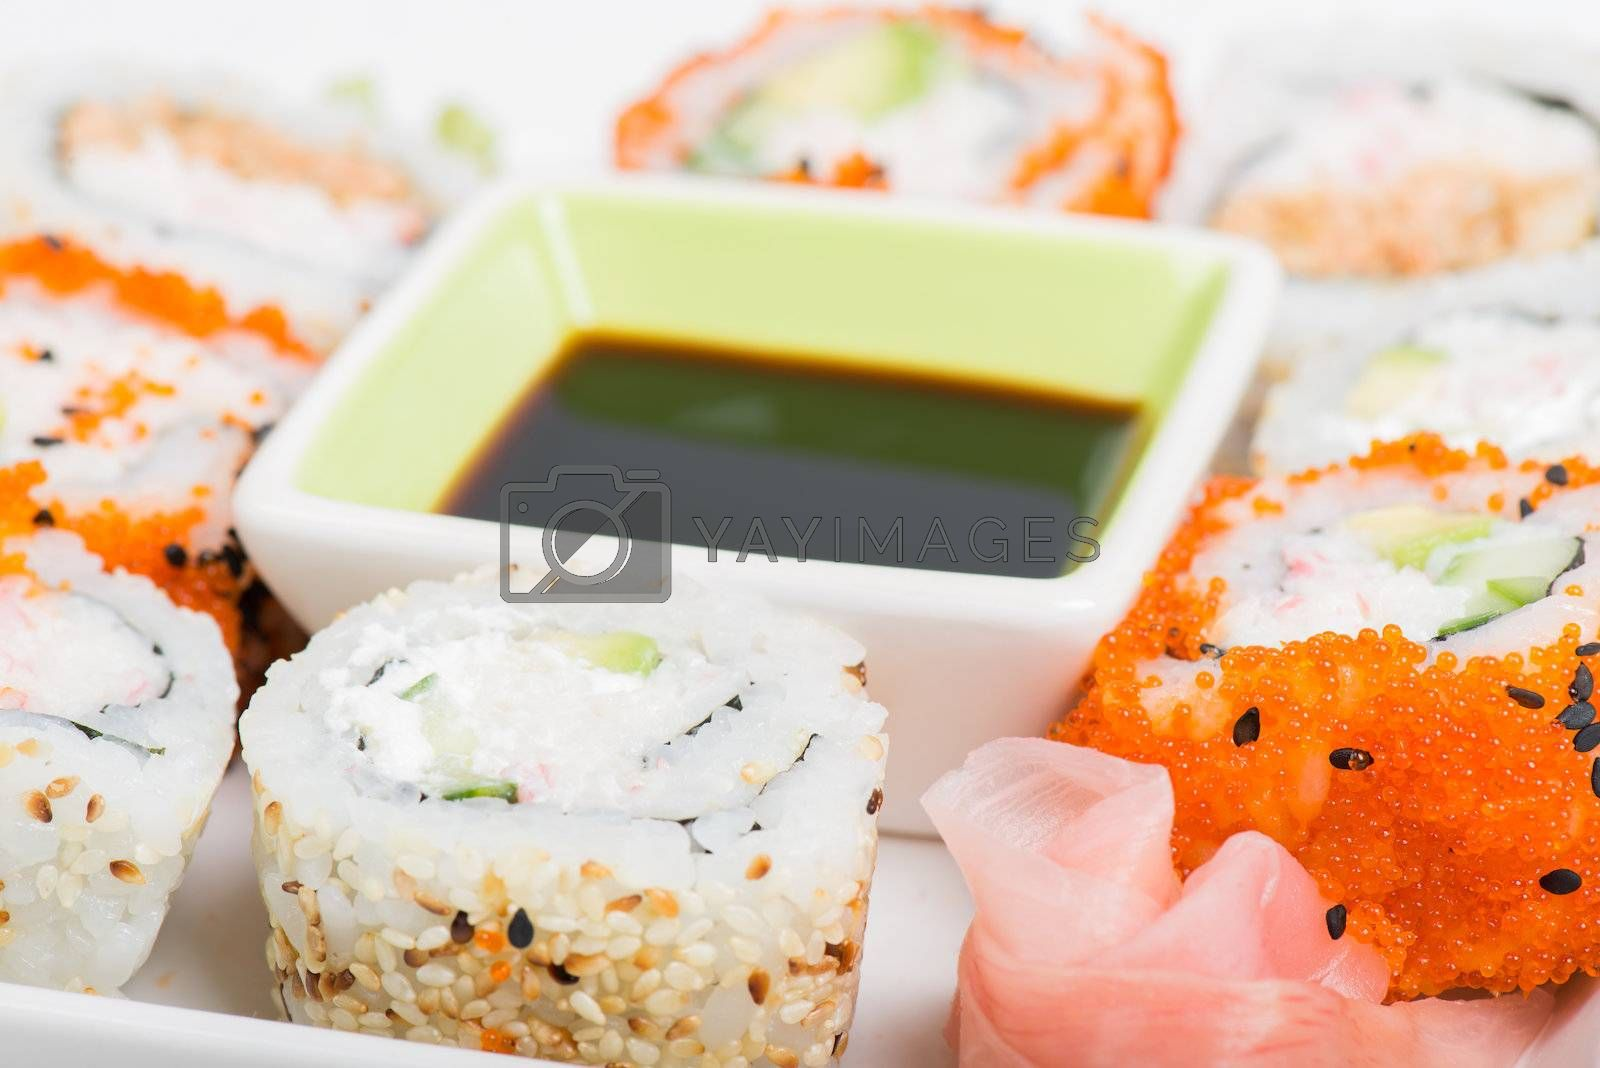 Soy sauce and sushi mix on the plate